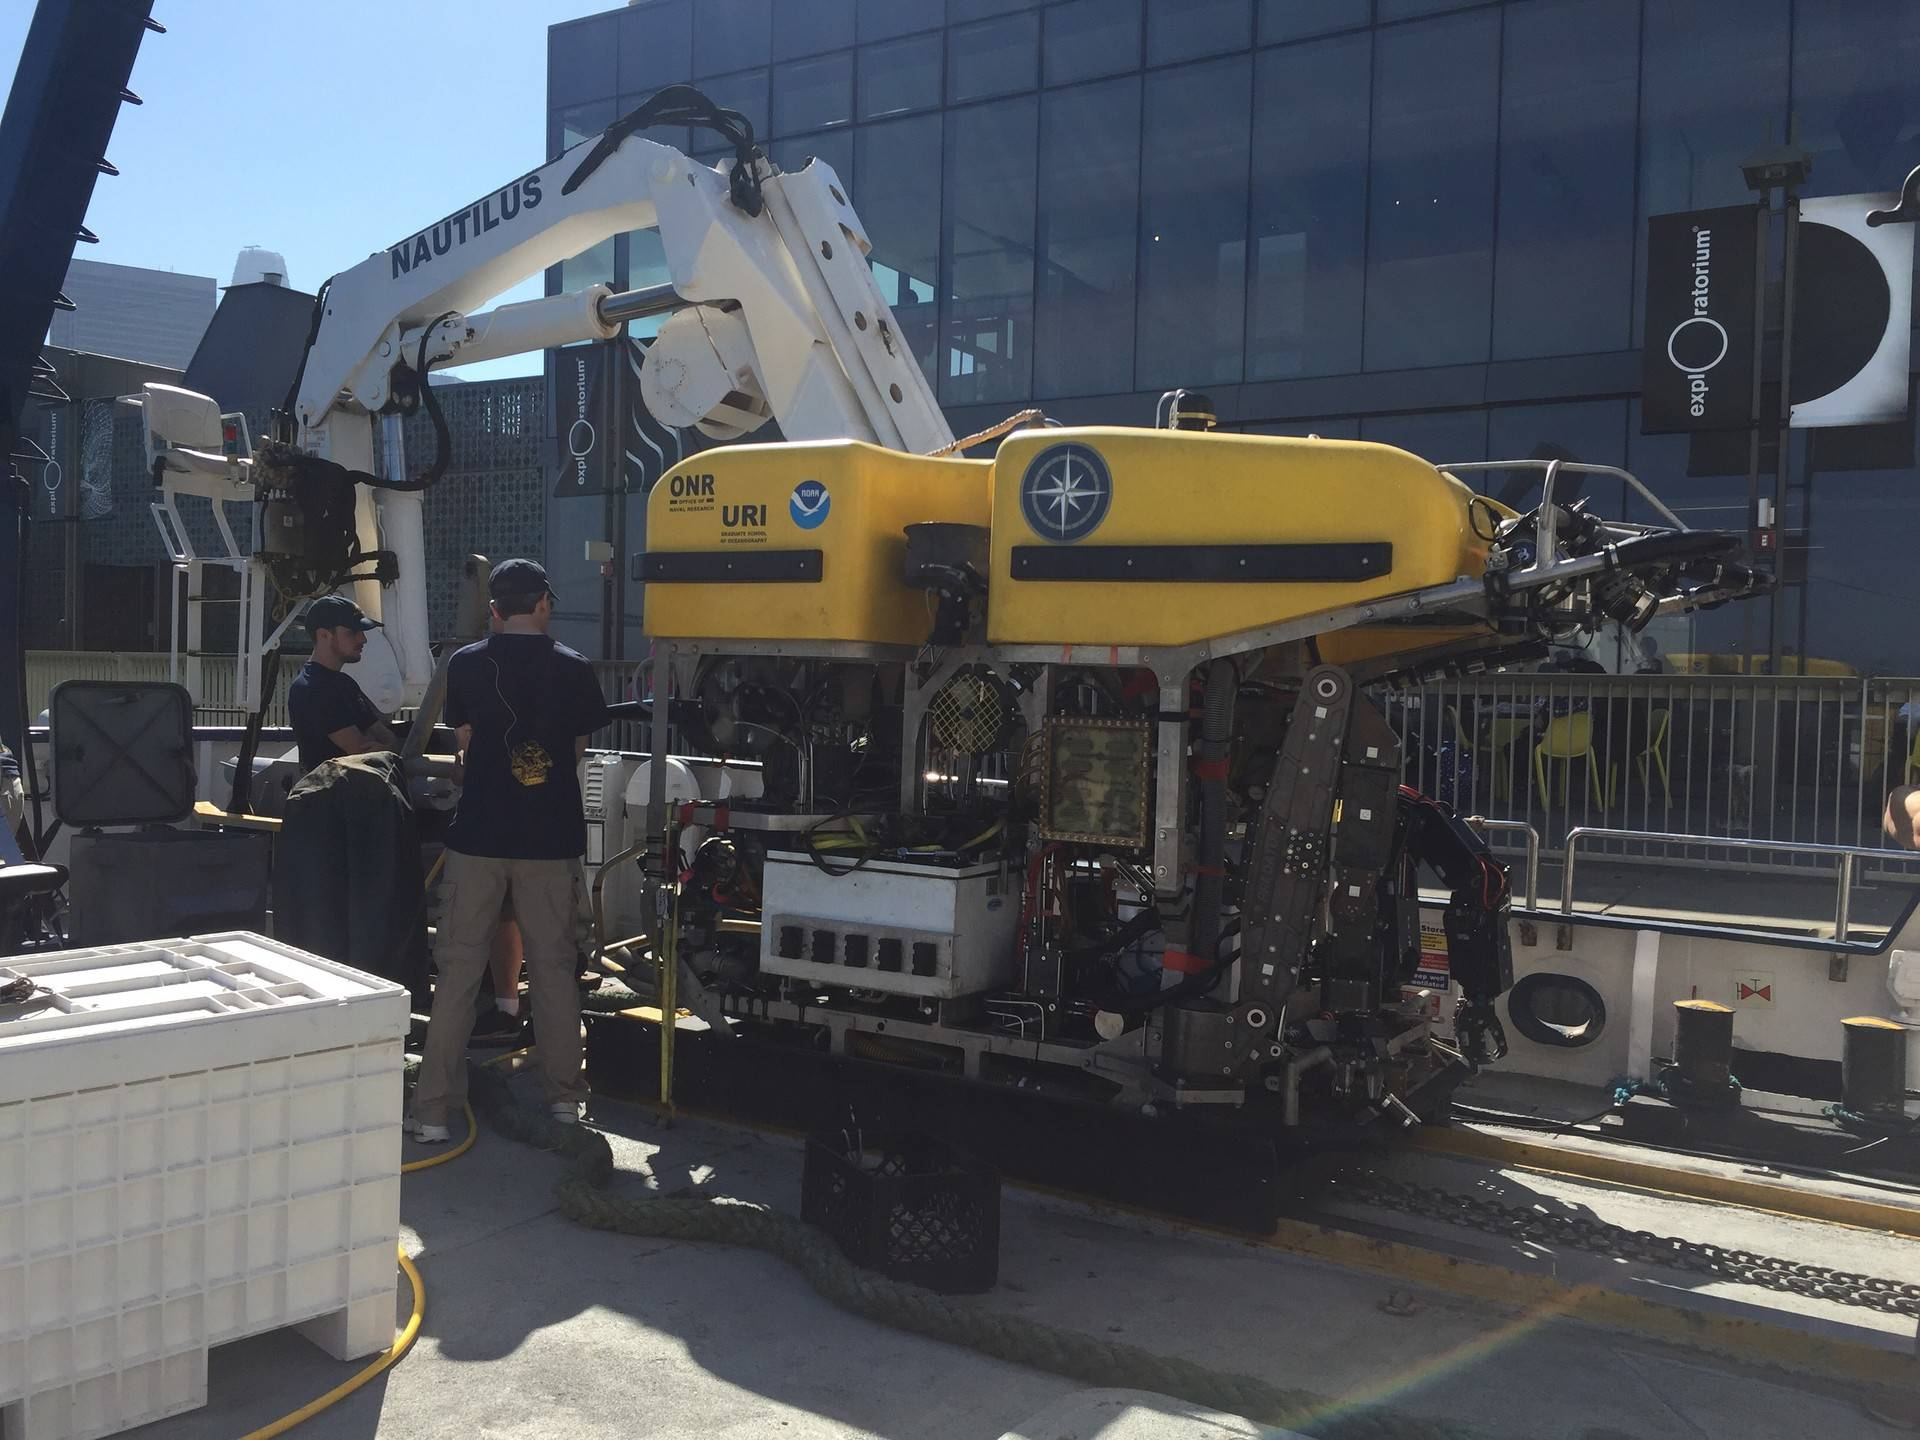 This robot will explore Davidson Seamount, an underwater mountain 12,000 feet below the surface and 80 miles southwest of Monterey. Sonja Hutson/KQED